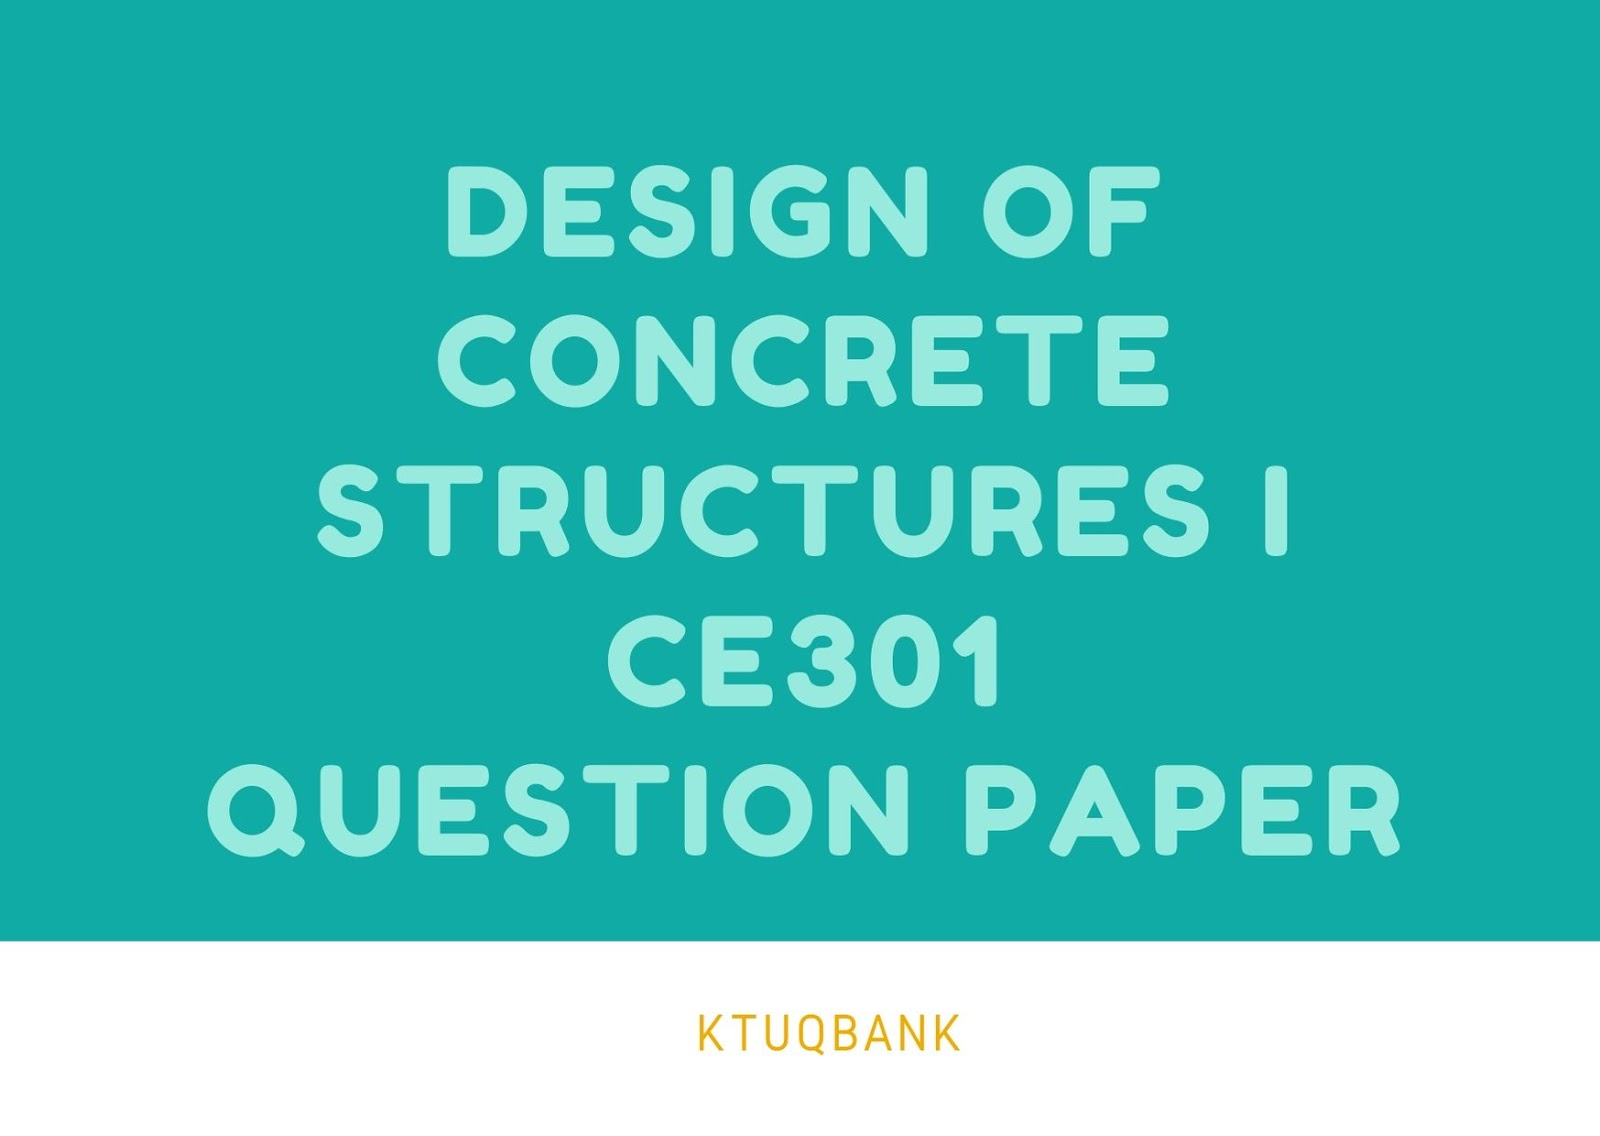 Design of Concrete Structures I | CE301 | Question Papers (2015 batch)